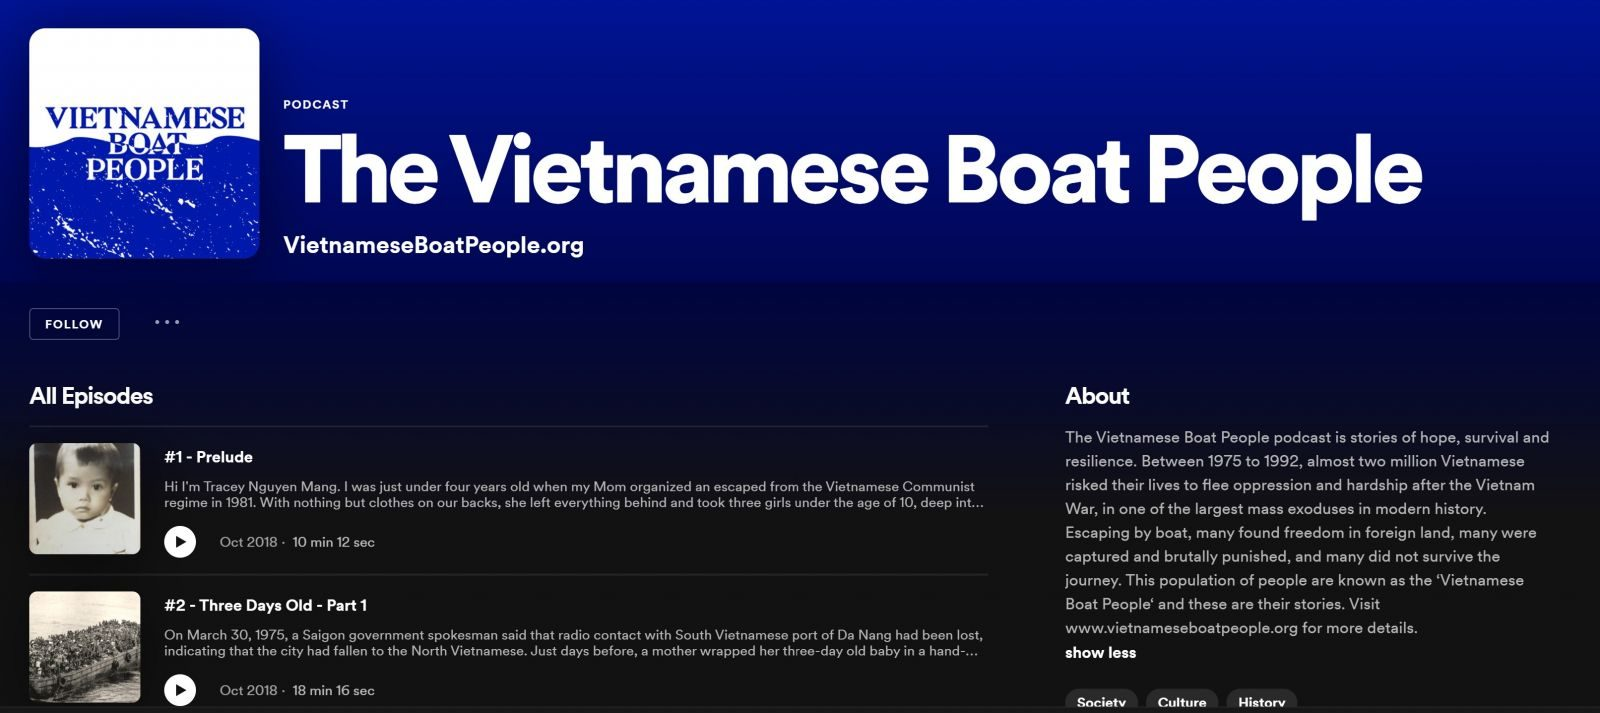 The Vietnamese Boat People podcast